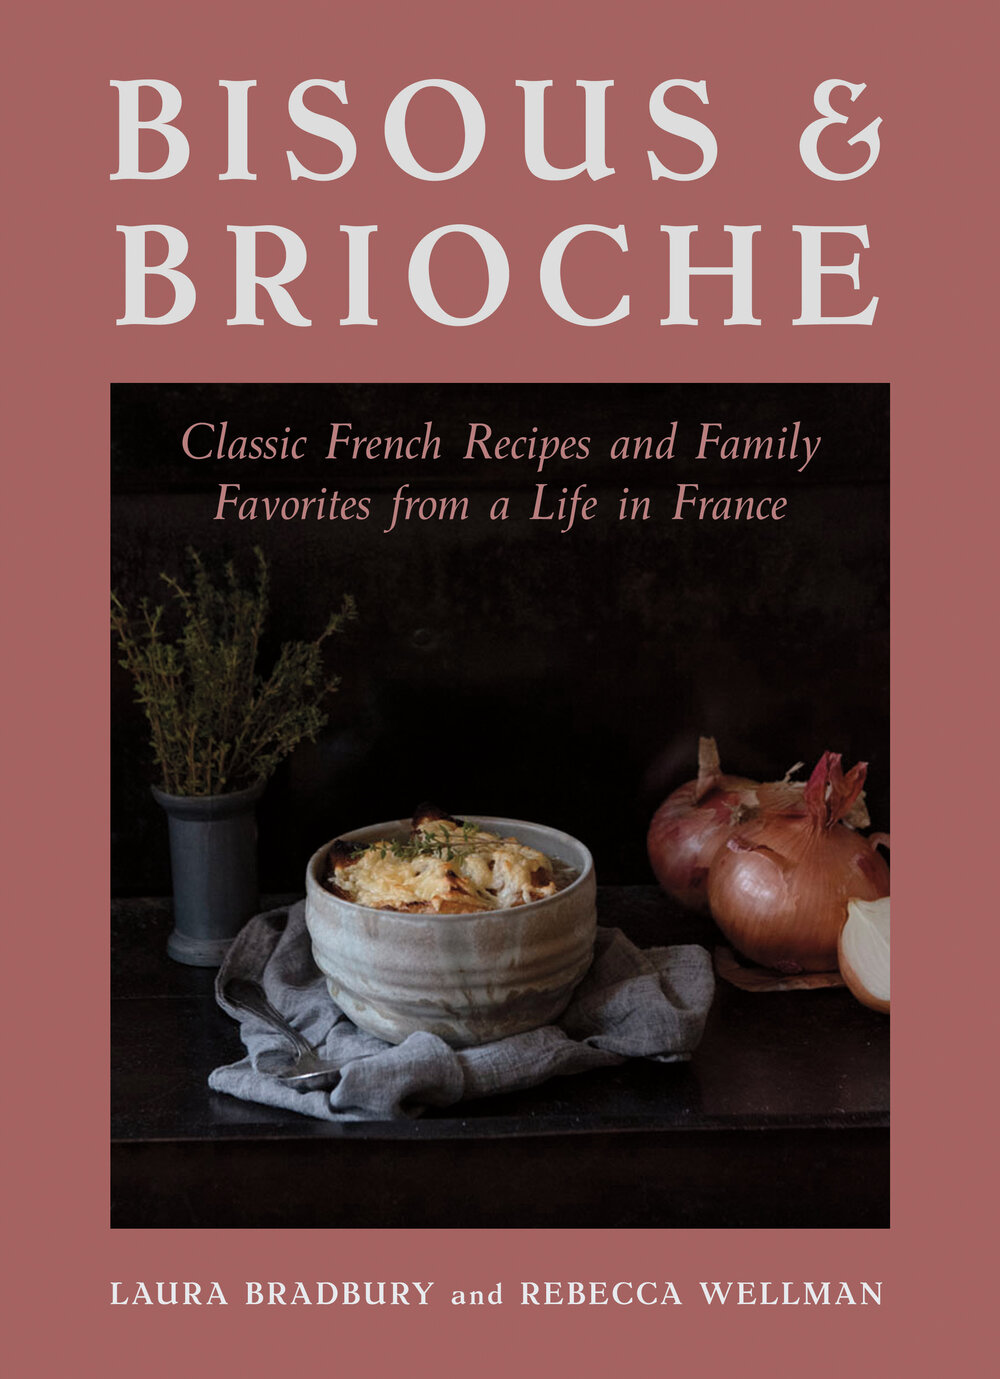 A book of recipes from the author of the Grape Series memoirs that will transport you to a rustic French cottage surrounded by vineyards, no matter where in the world your kitchen might be.